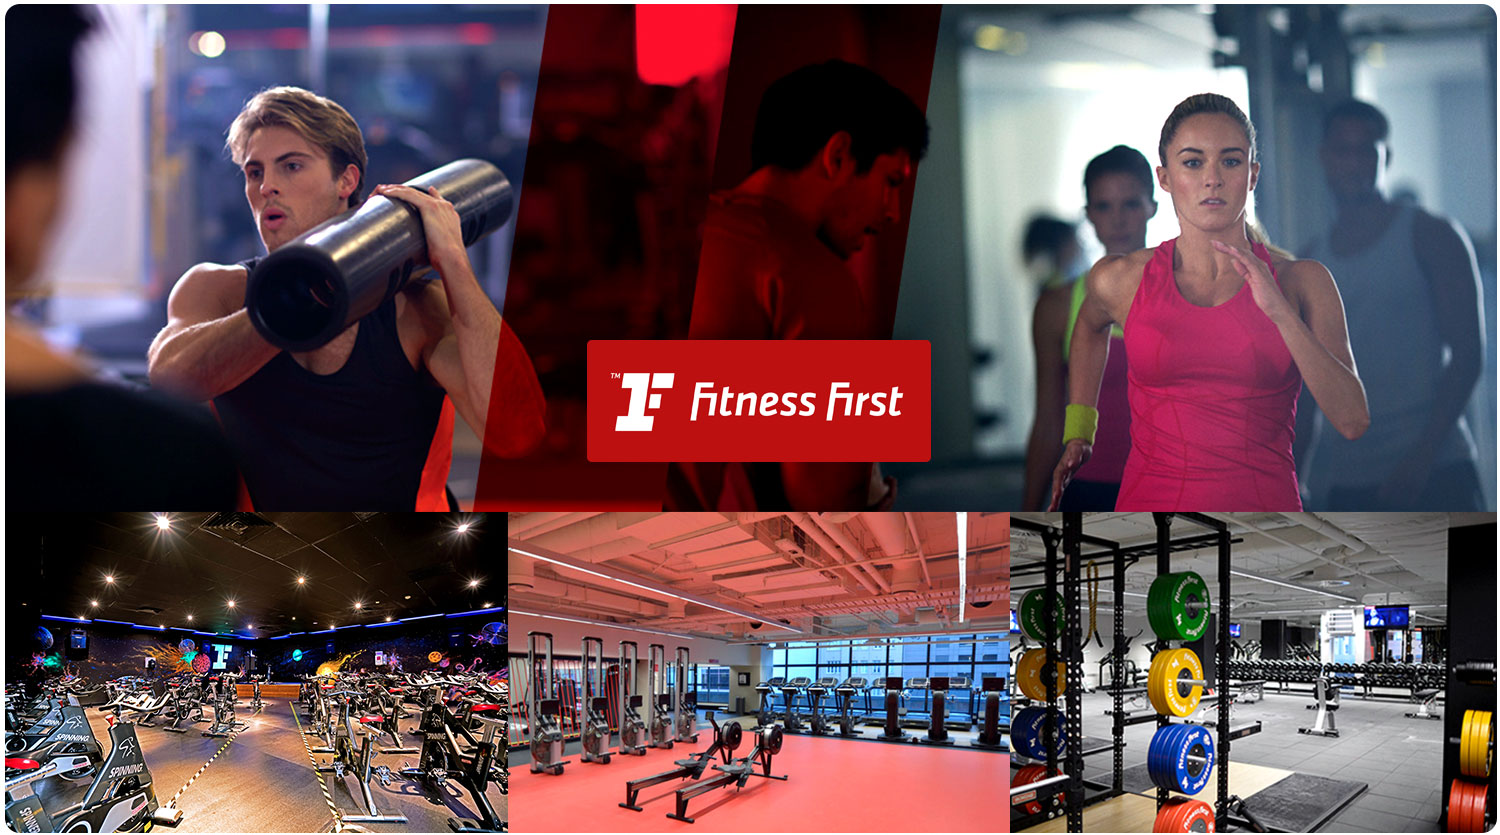 Start your Fitness Journey with Fitness First with only $14.95 for 14 days at Fitness First Chatswood NSW. Experience our first class gym and freestyle classes inc. Zumba, Pilates, Yoga, Les Mills and more. Take the first step with Fitness First Chatswood NSW.